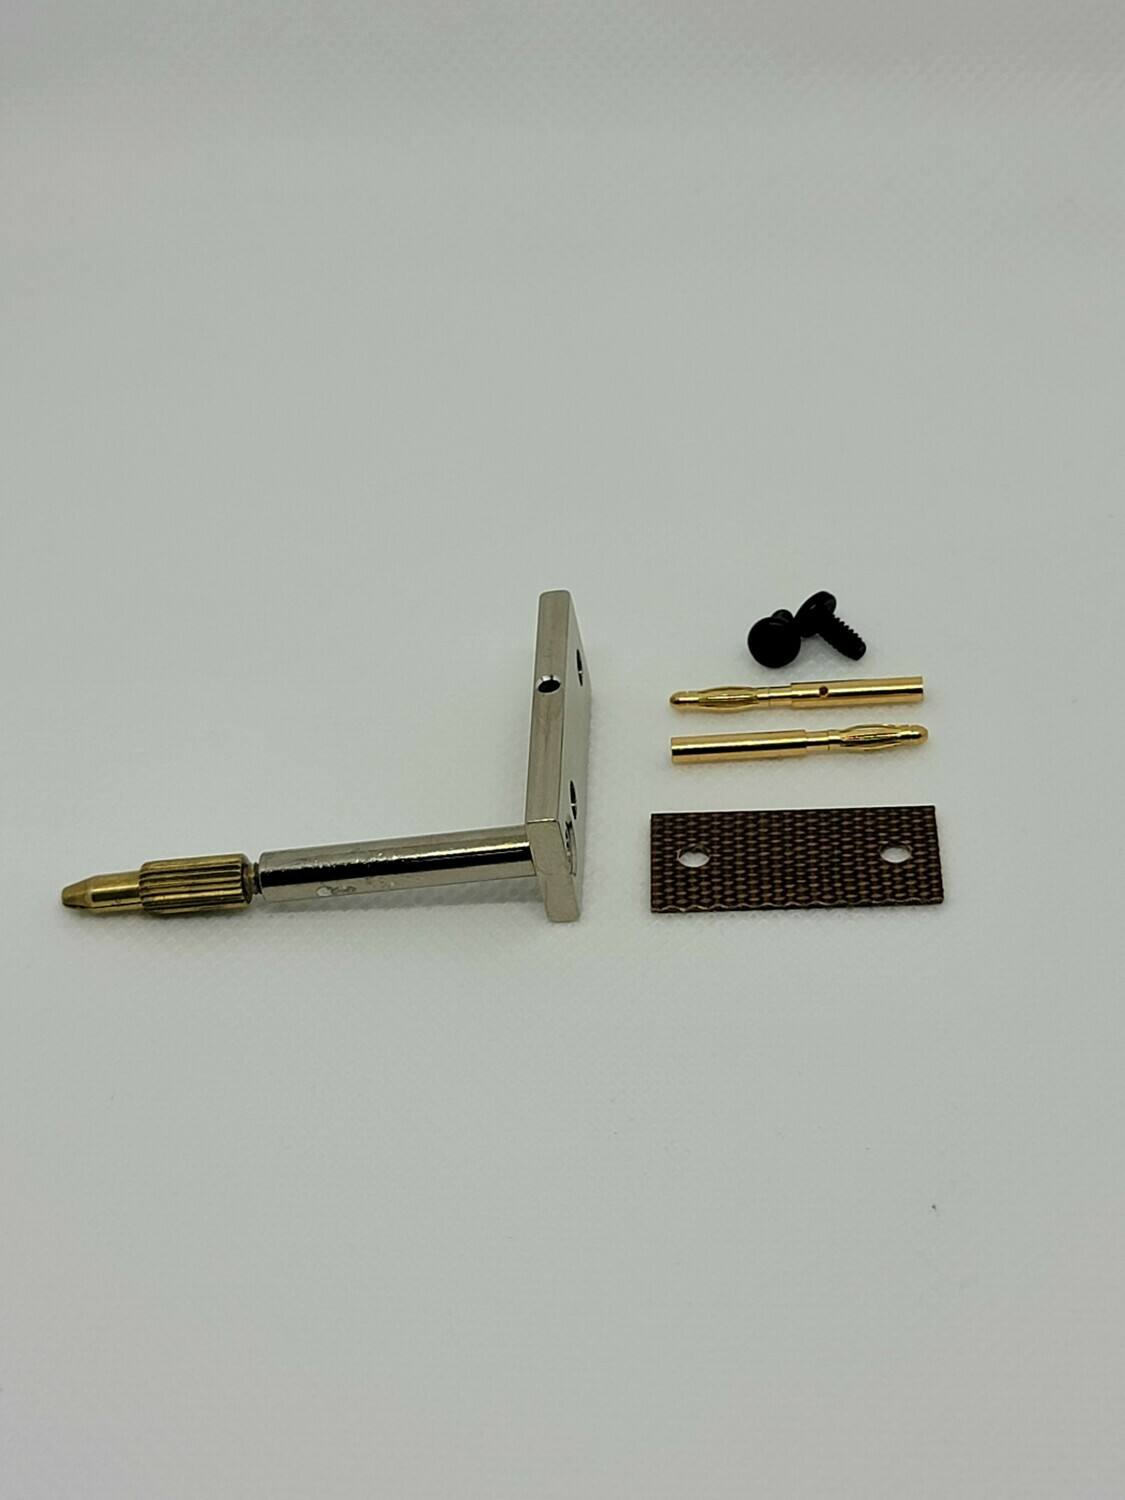 20240 Test Arm Holder With Collett Clamp